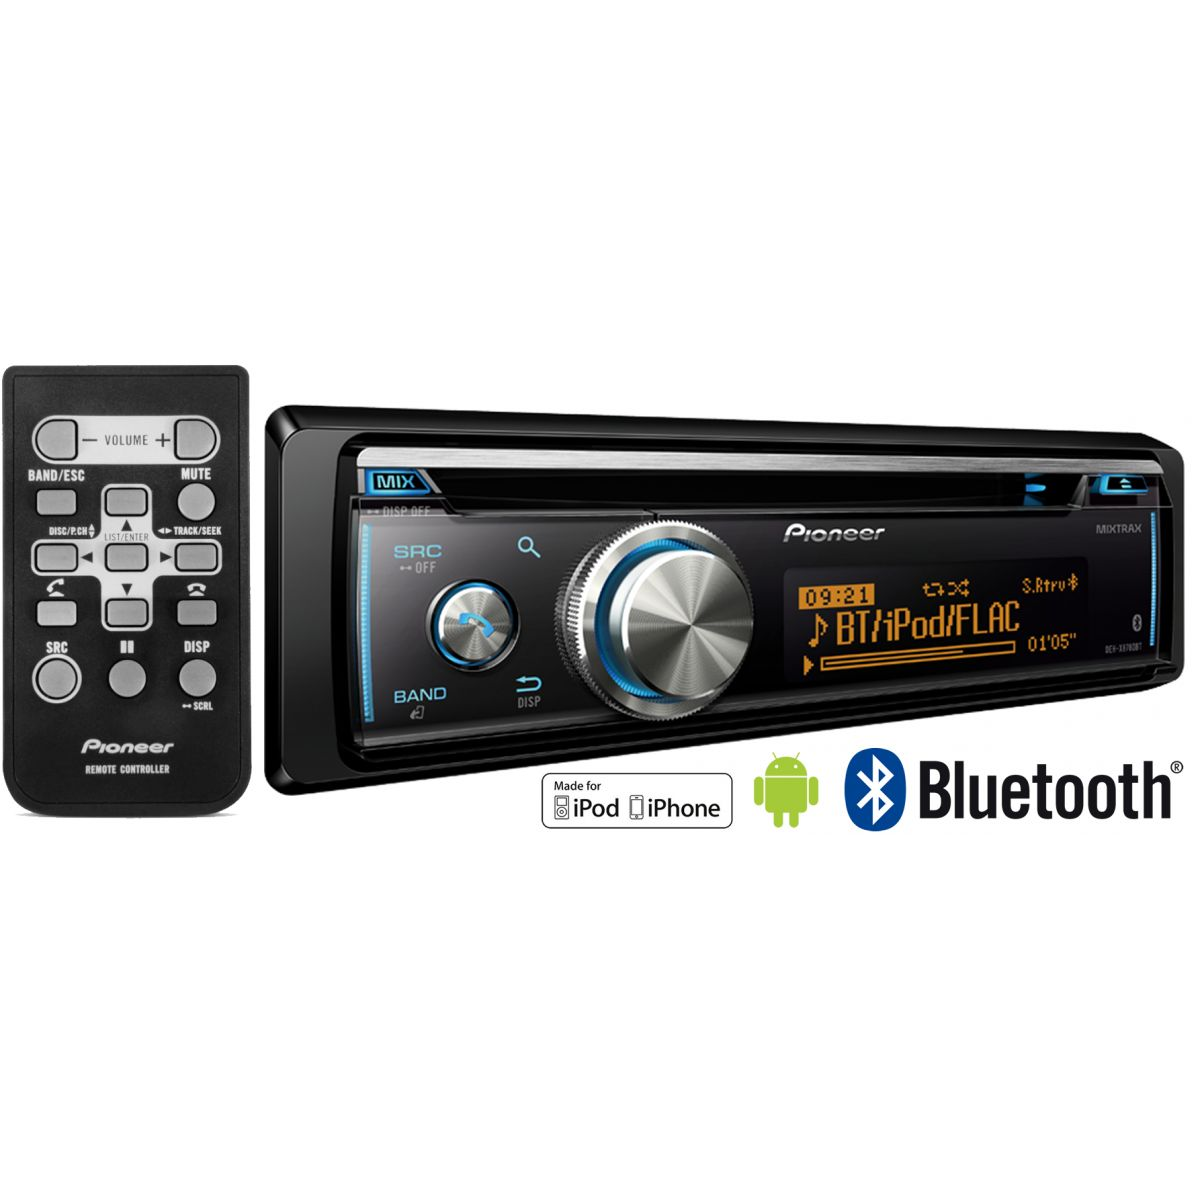 Som Automotivo CD Player Pioneer DEH-X8780BT Gráfico Bluetooth 3.0 Mixtrax Android - Entrada Auxiliar e USB